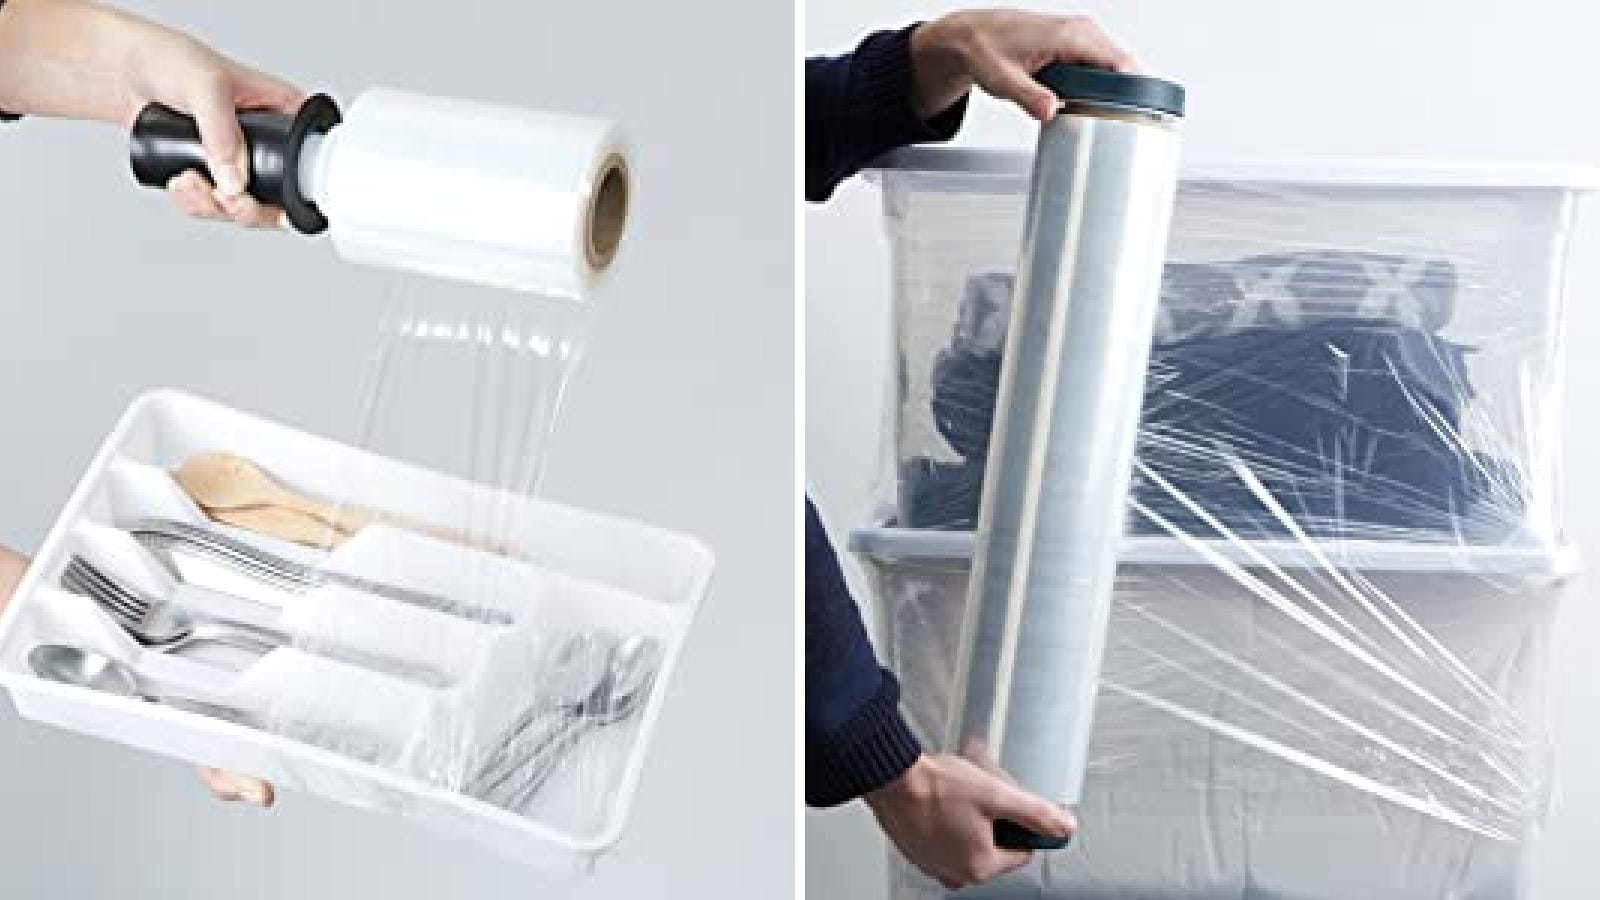 Two images showing how to use Duck stretch wrap when packing for an upcoming move, including wrapping silverware trays and bins of clothes.